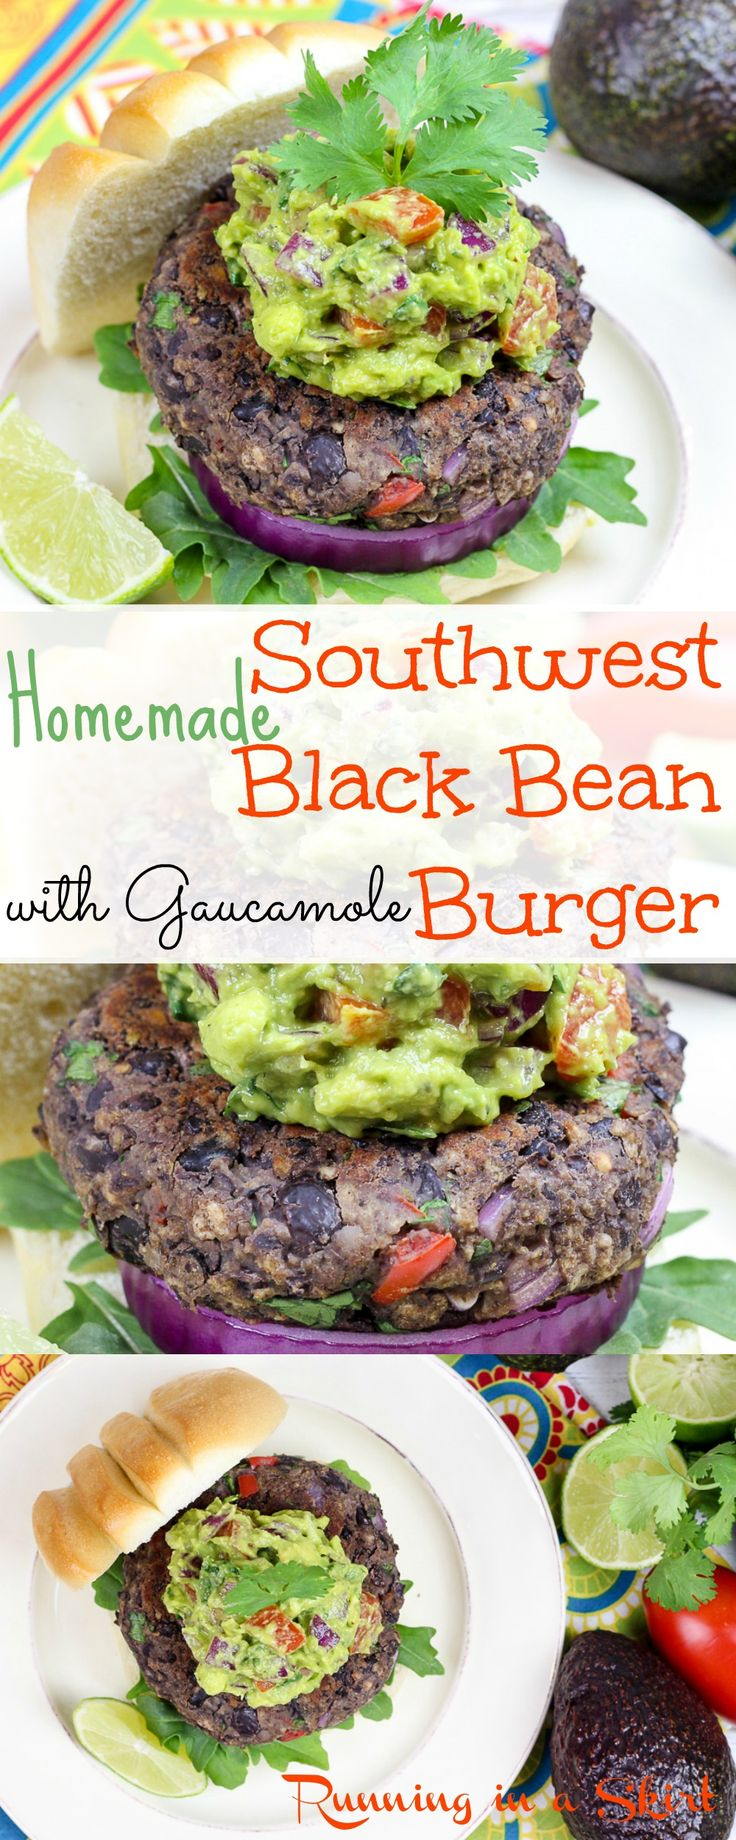 Easy & Healthy Homemade Southwest Black Bean Burgers with guacamole. A vegetarian grilling option anyone will love. These are simply the best! Grilled or cook them on the stove top. Packed with veggie goodness. Stock the freezer to eat anytime. These are